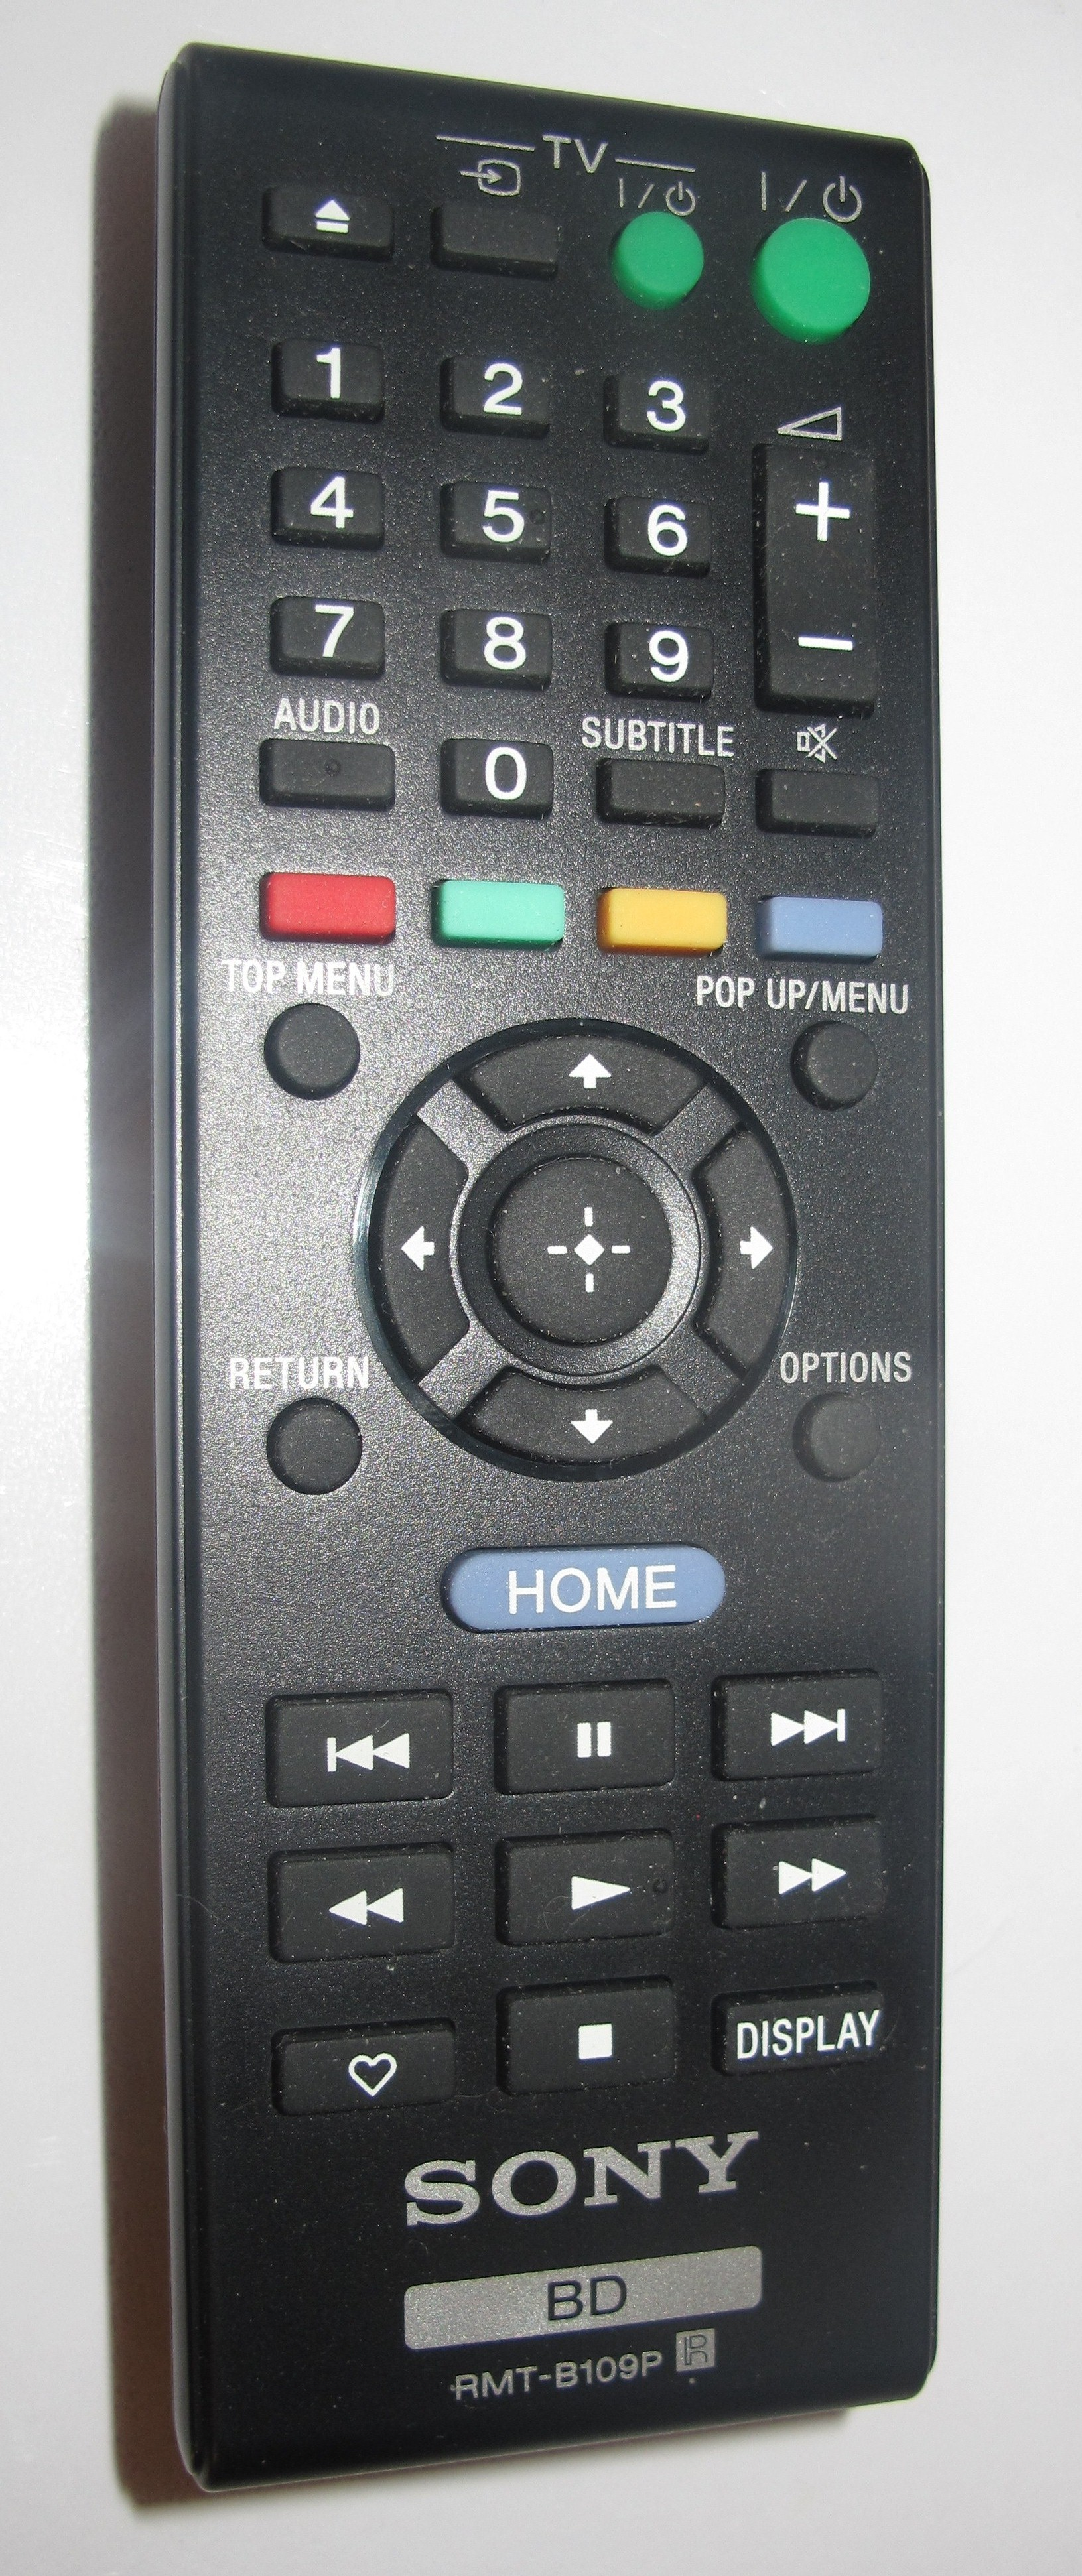 Sony BDP-S380 Network Blu-Ray Player remote control